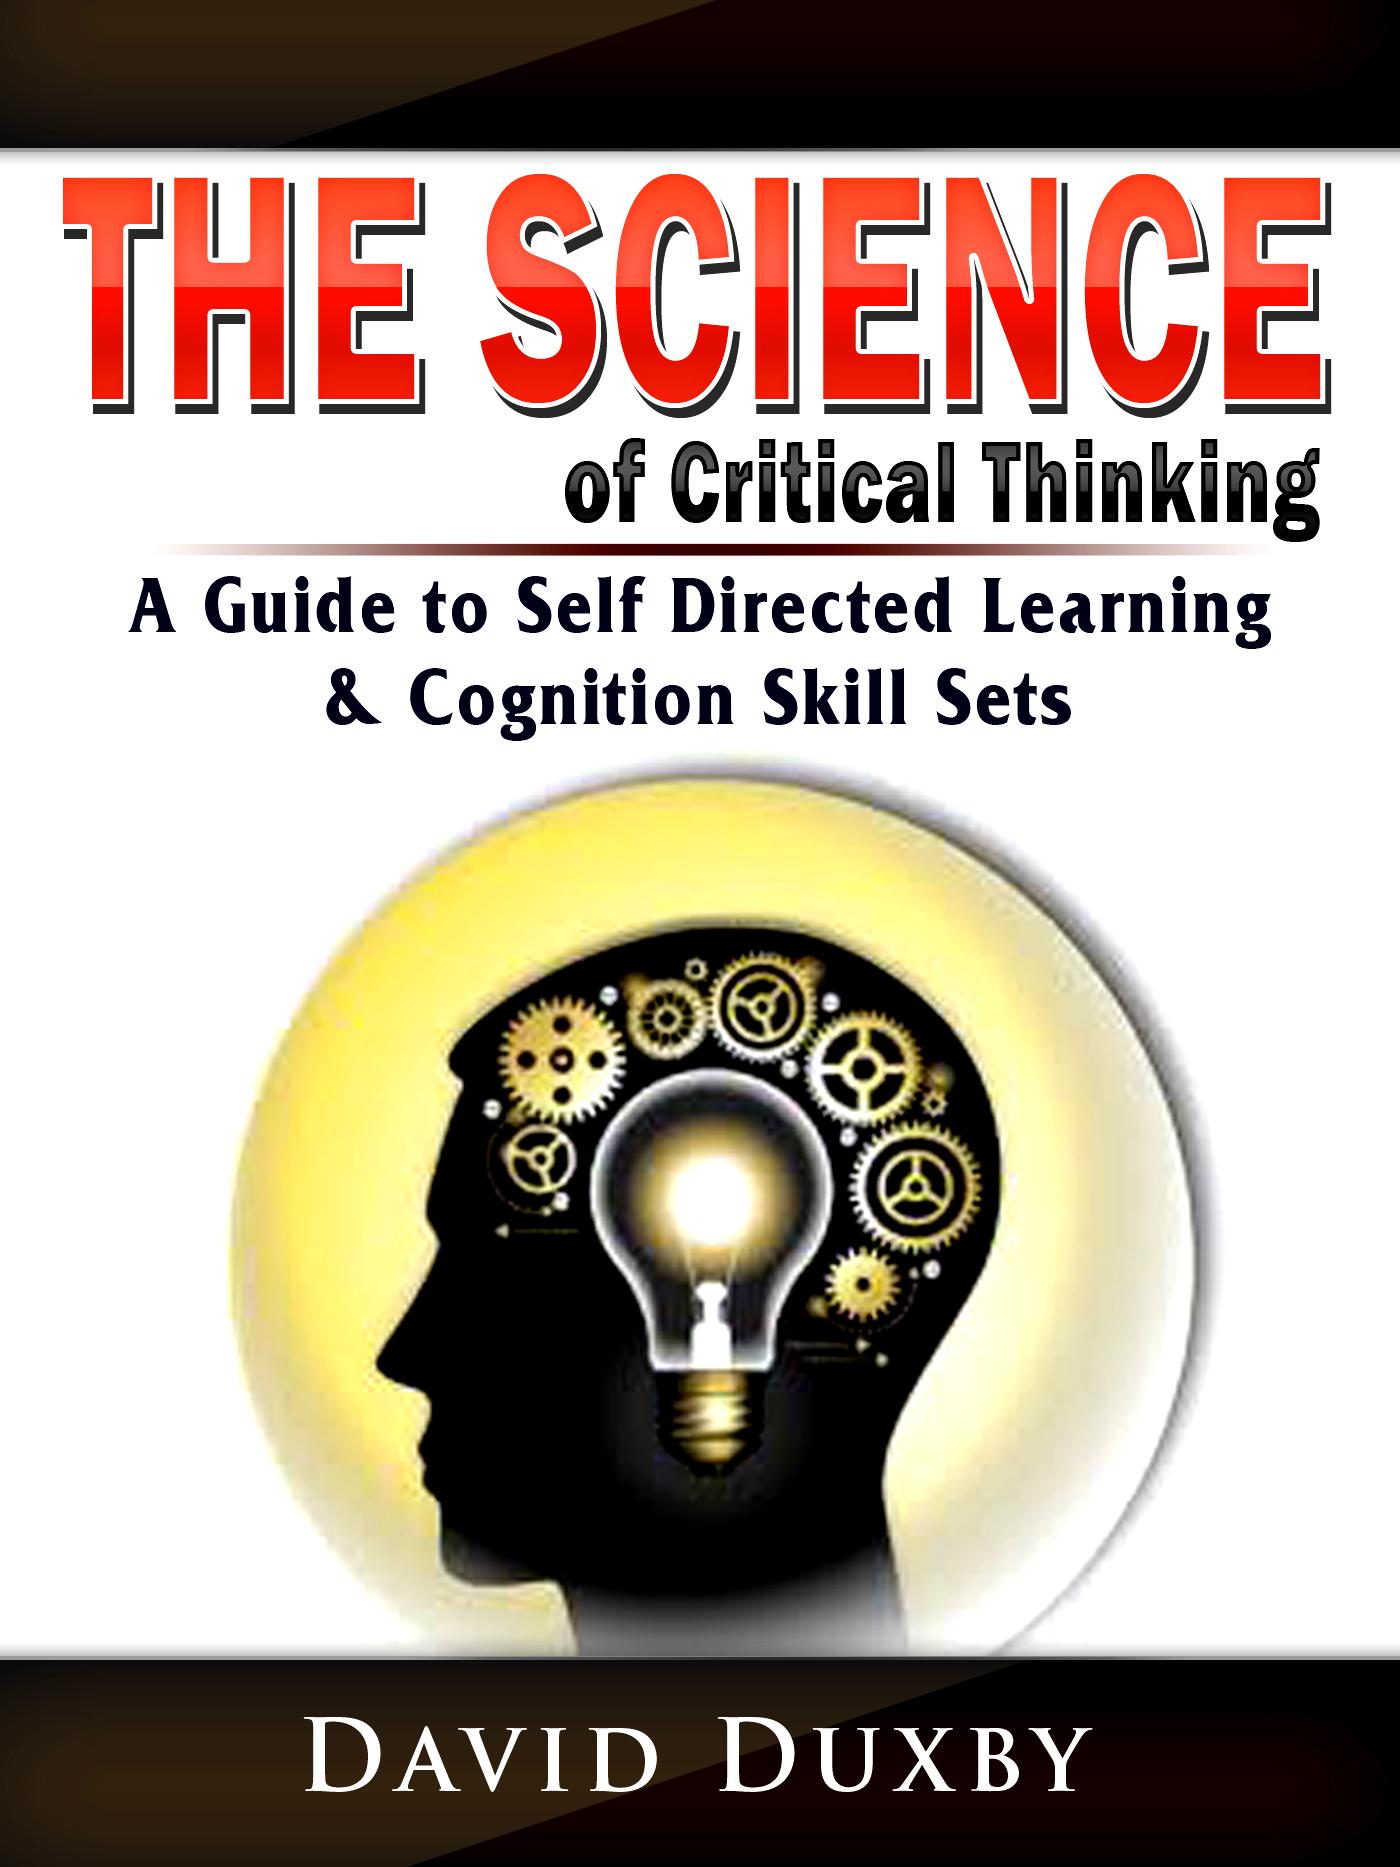 The science of critical thinking: a guide to self directed learning, & cognition skill sets